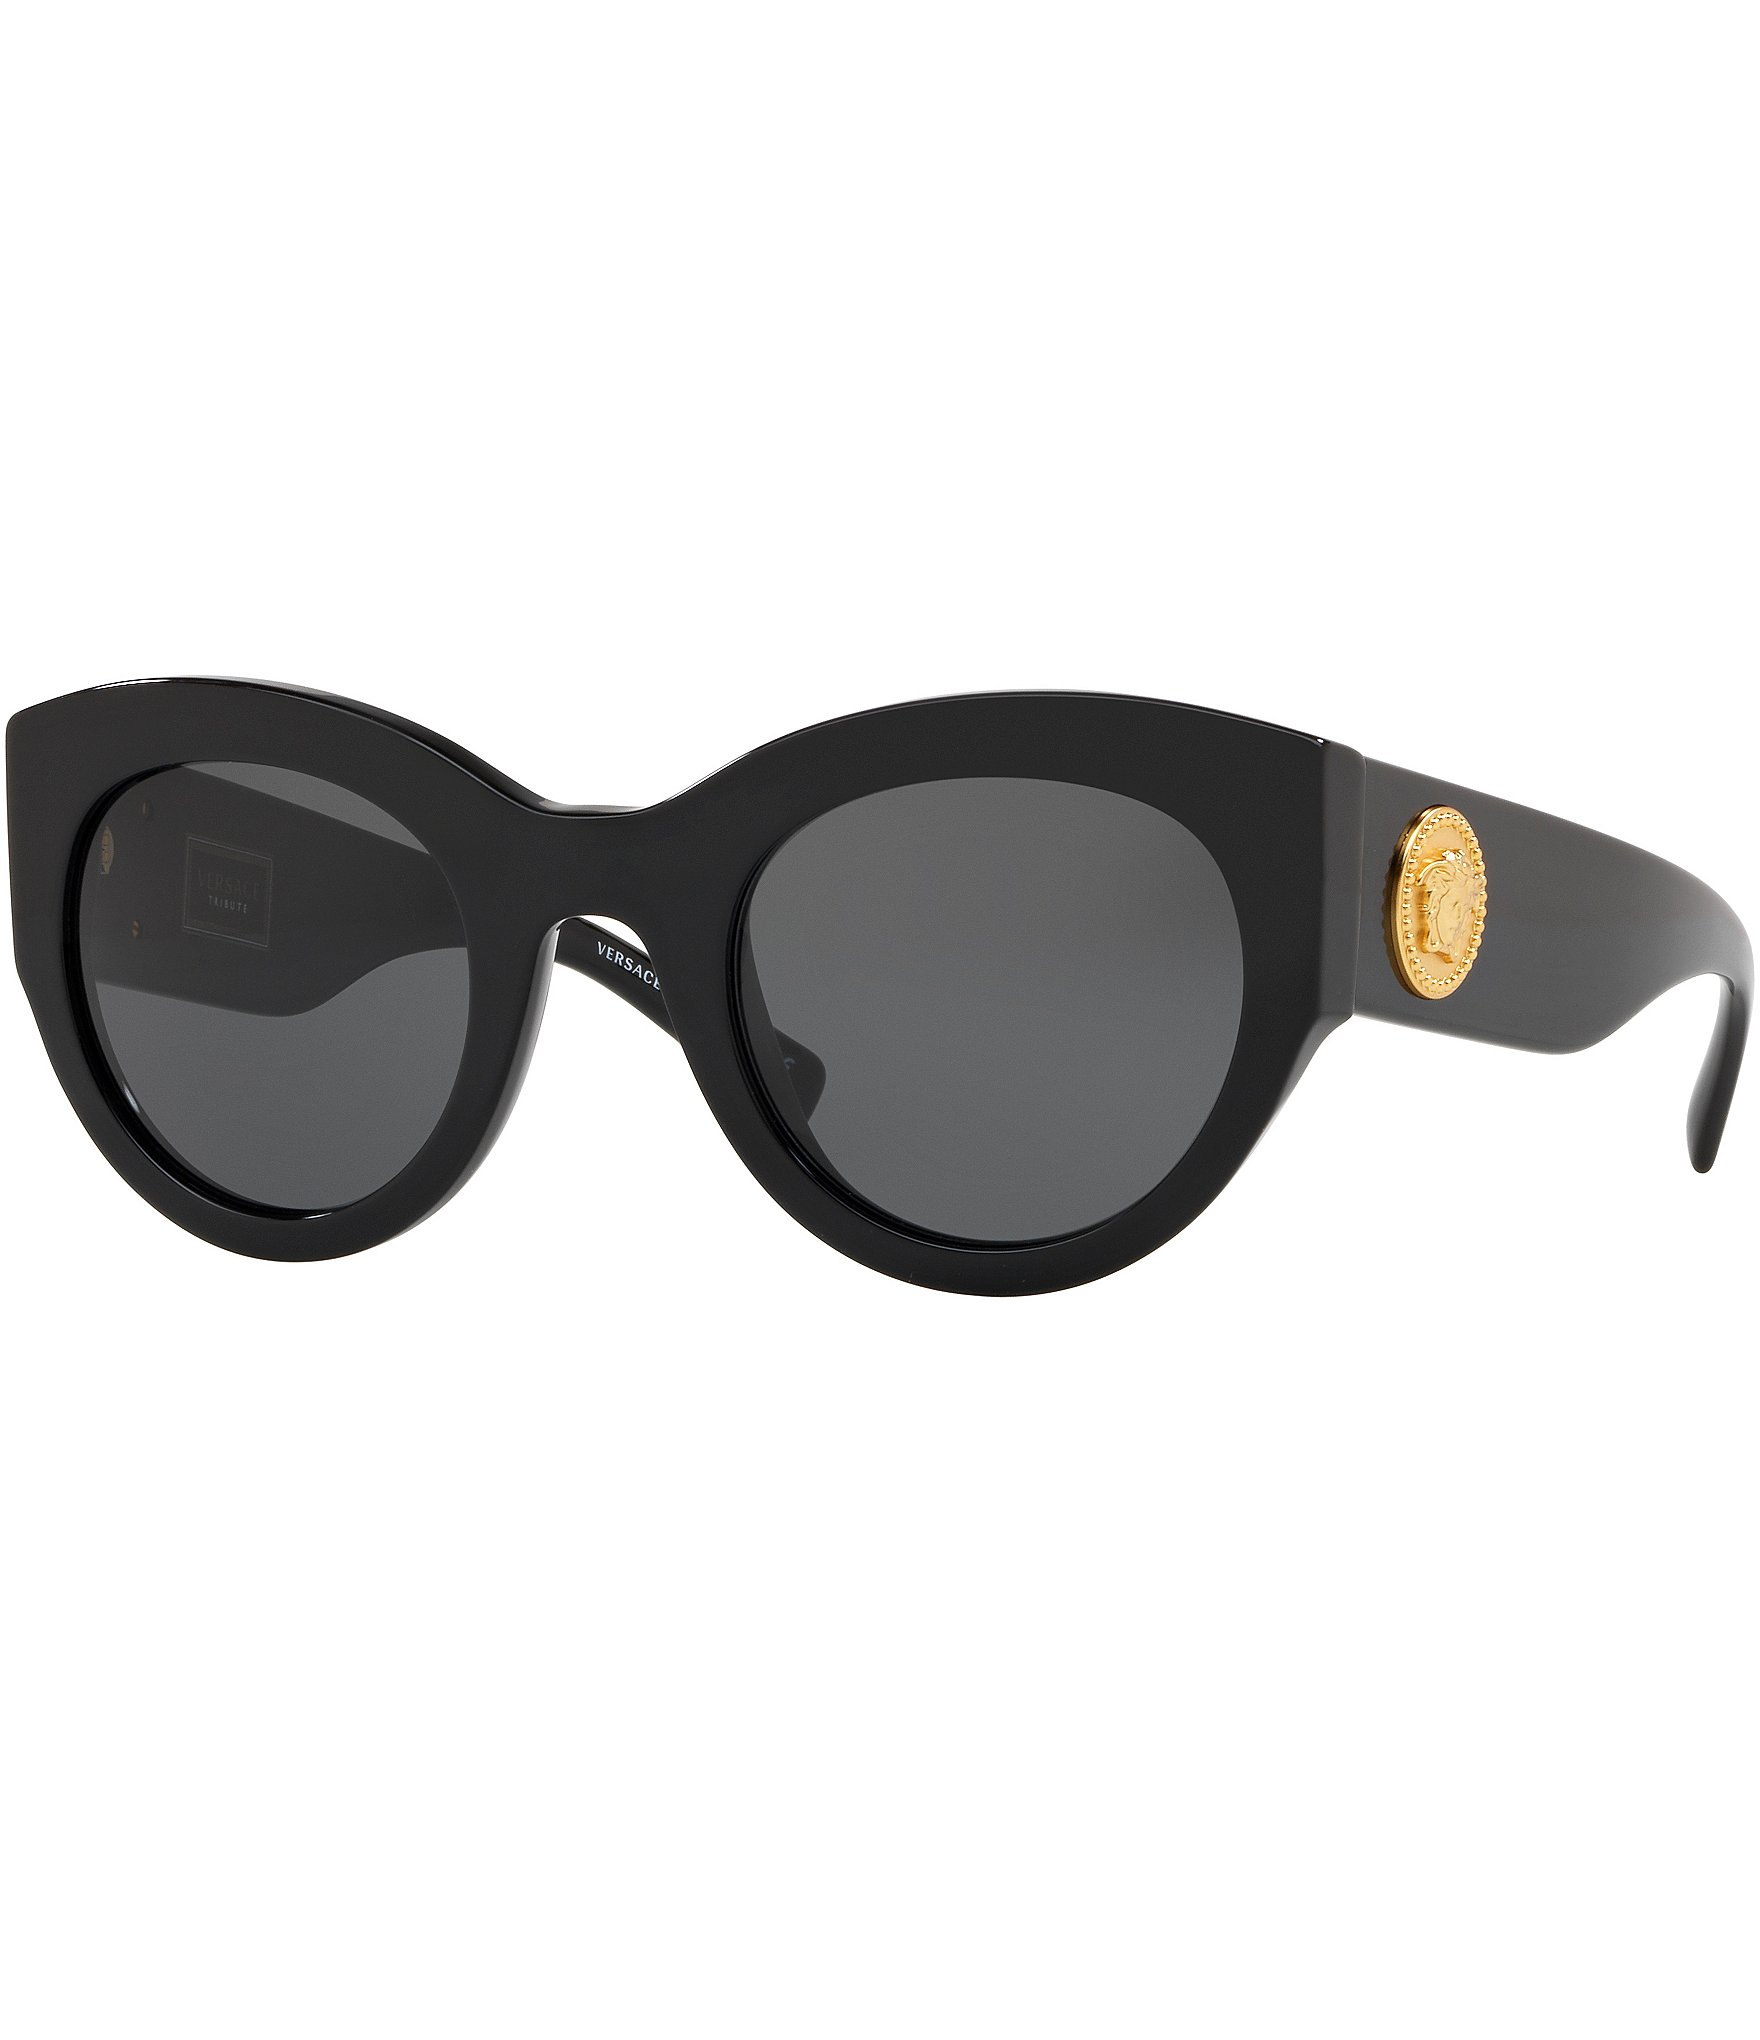 hot-selling discount sells attractive & durable Versace Vintage Tribute Medusa Cat Eye Sunglasses